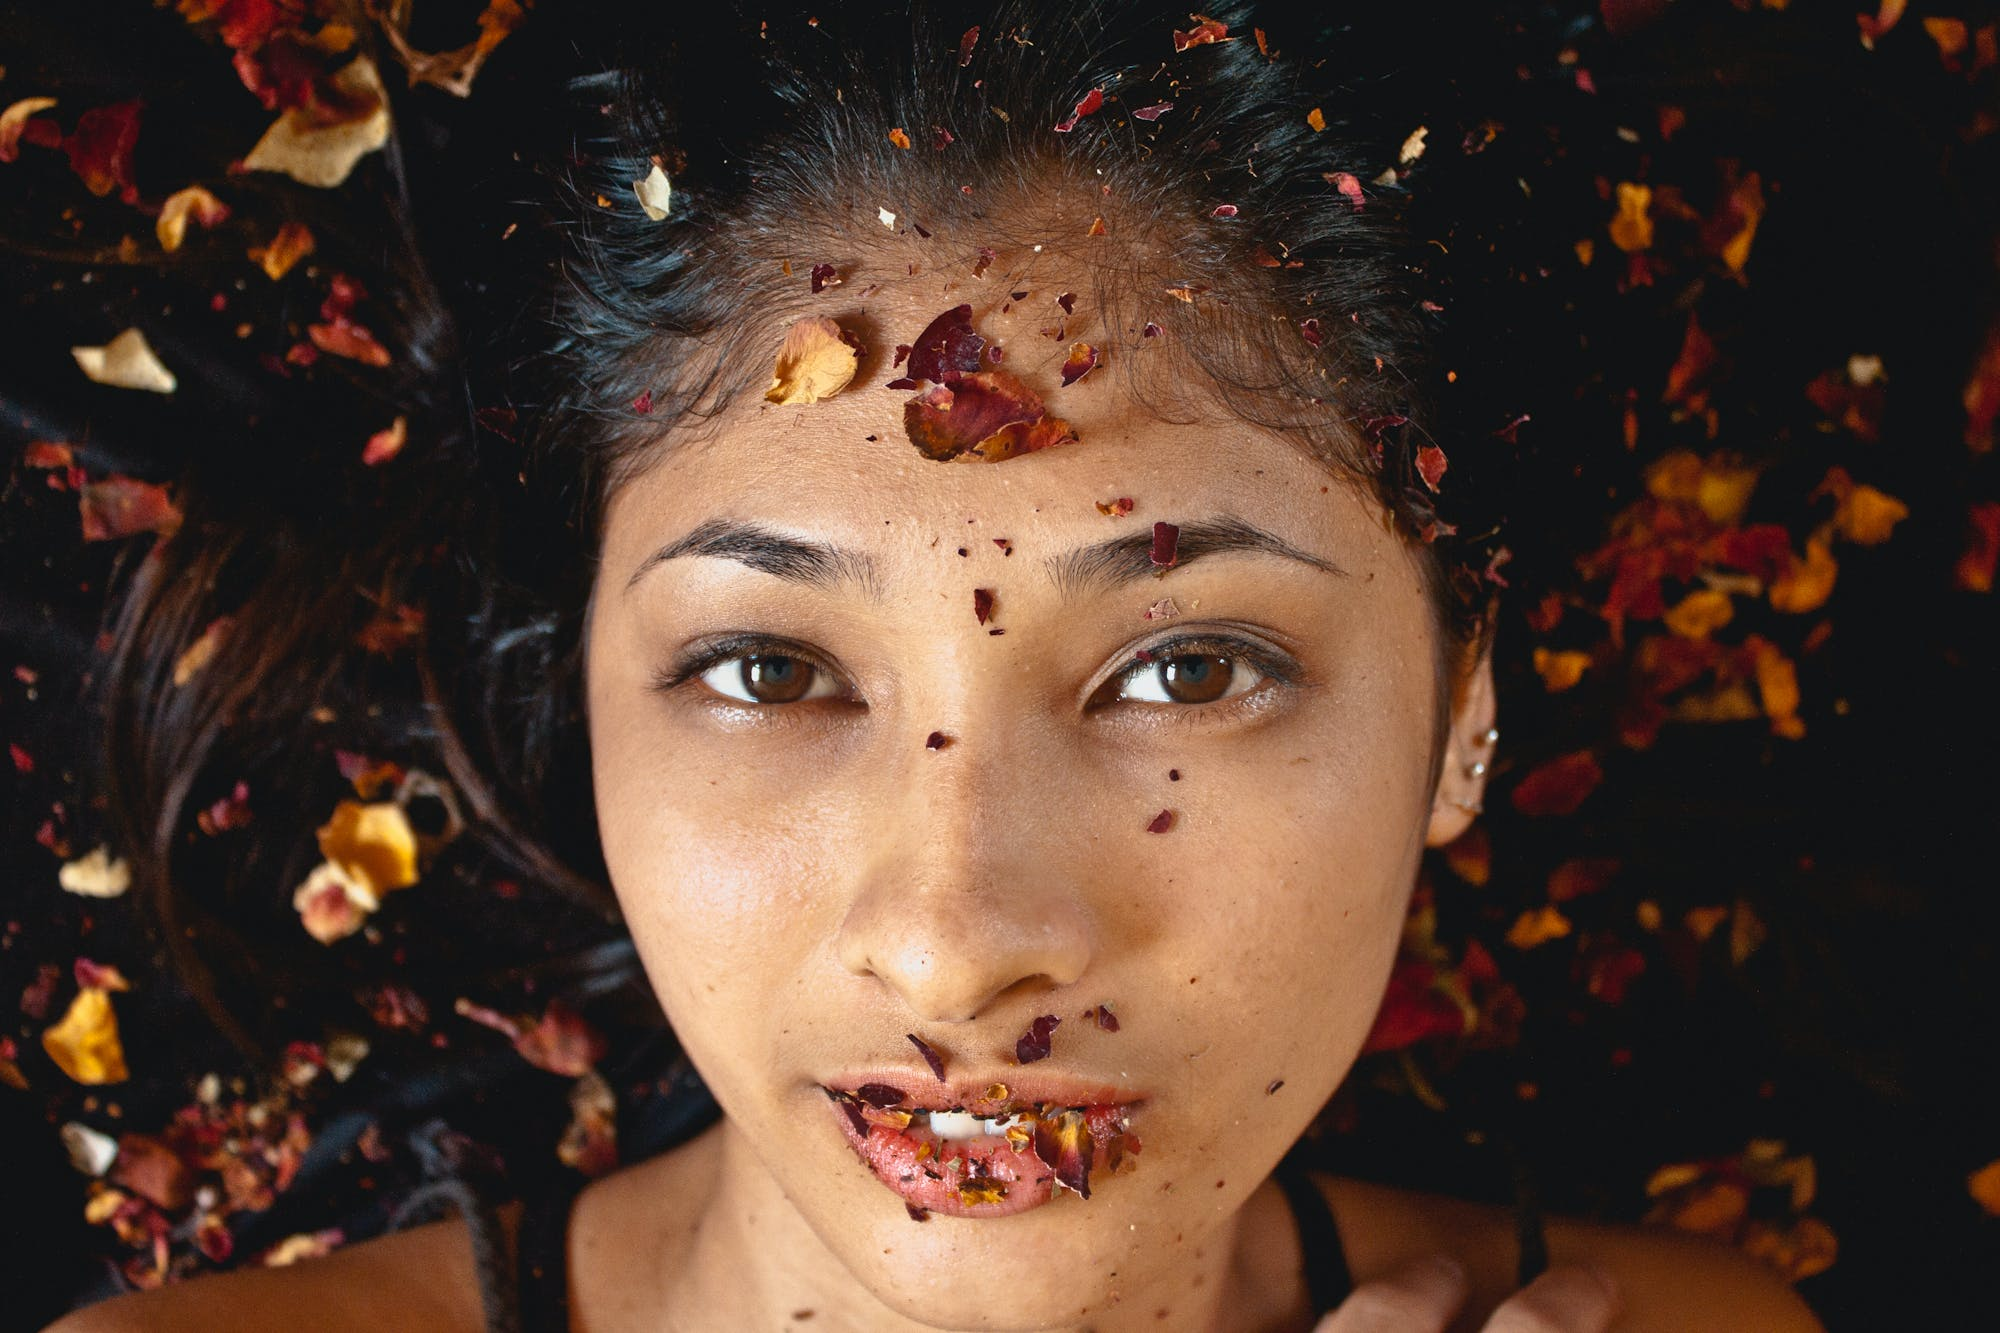 Photography of Woman Whose Lying on Dried Leaves